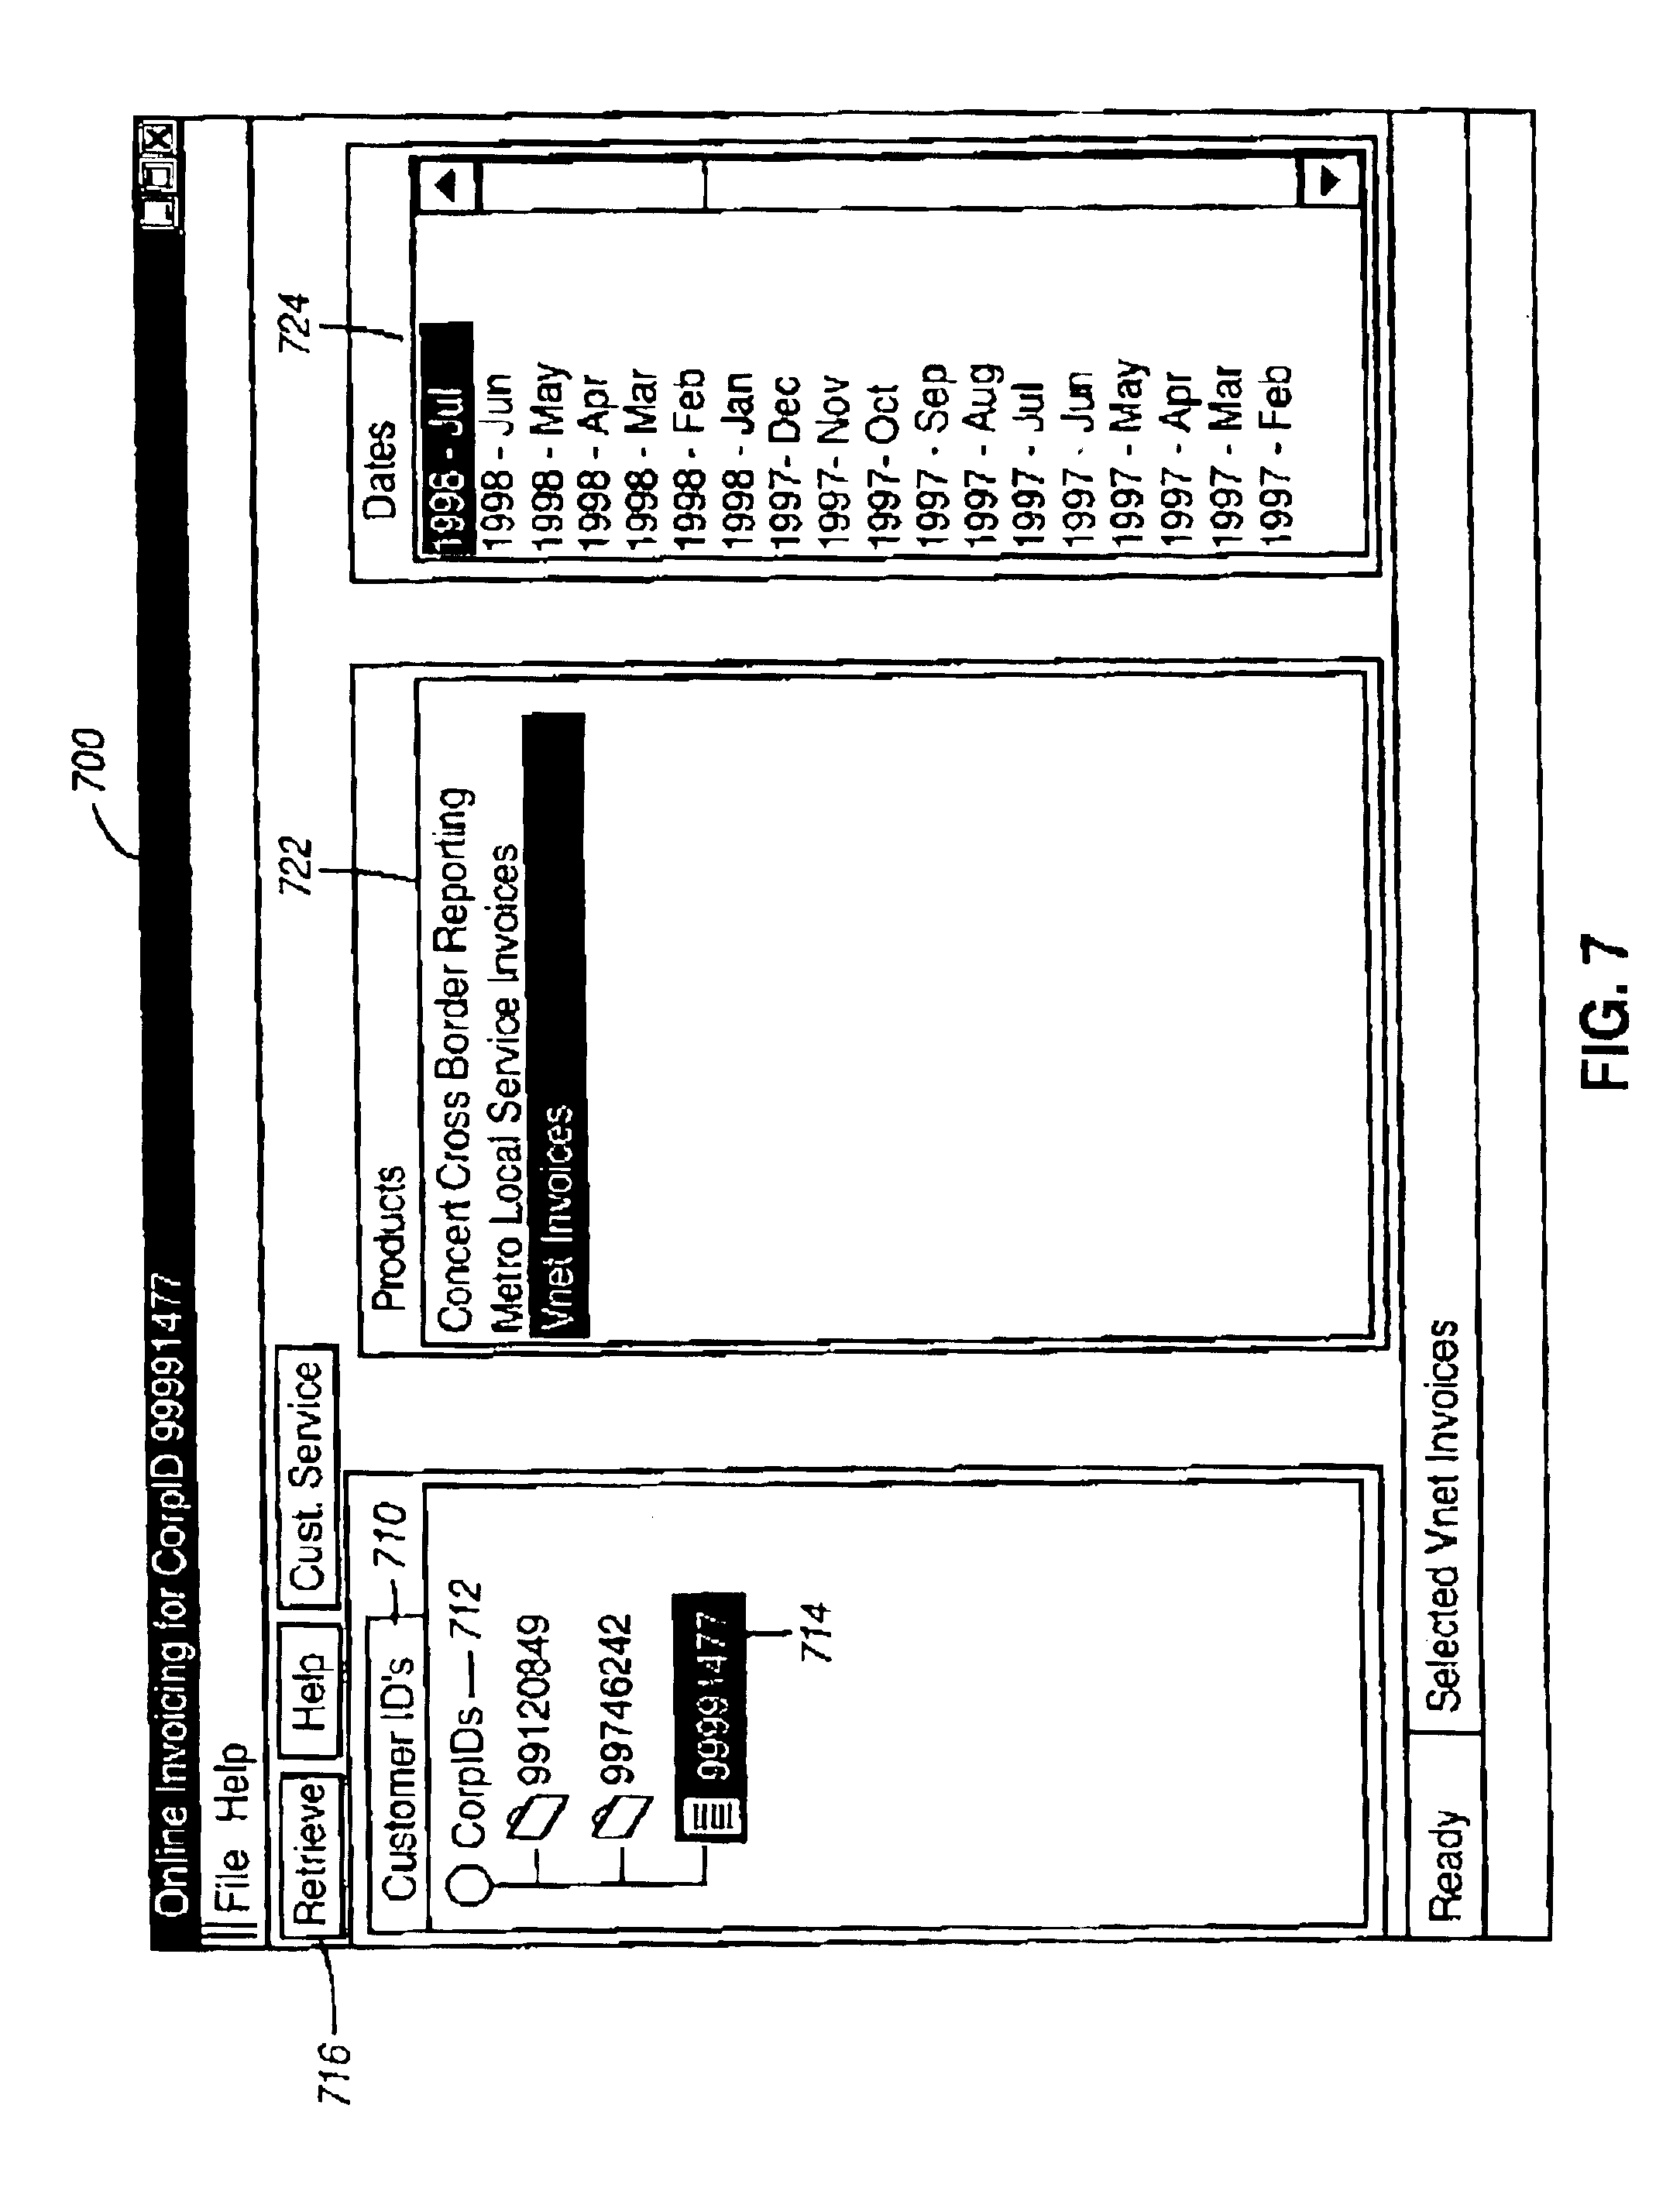 Pos Receipt Paper Excel Patent Us  Web Based Integrated Customer Interface For  Lexus Rx 350 Invoice Price with Template Invoice Excel Word Patent Drawing Po Number Invoice Pdf